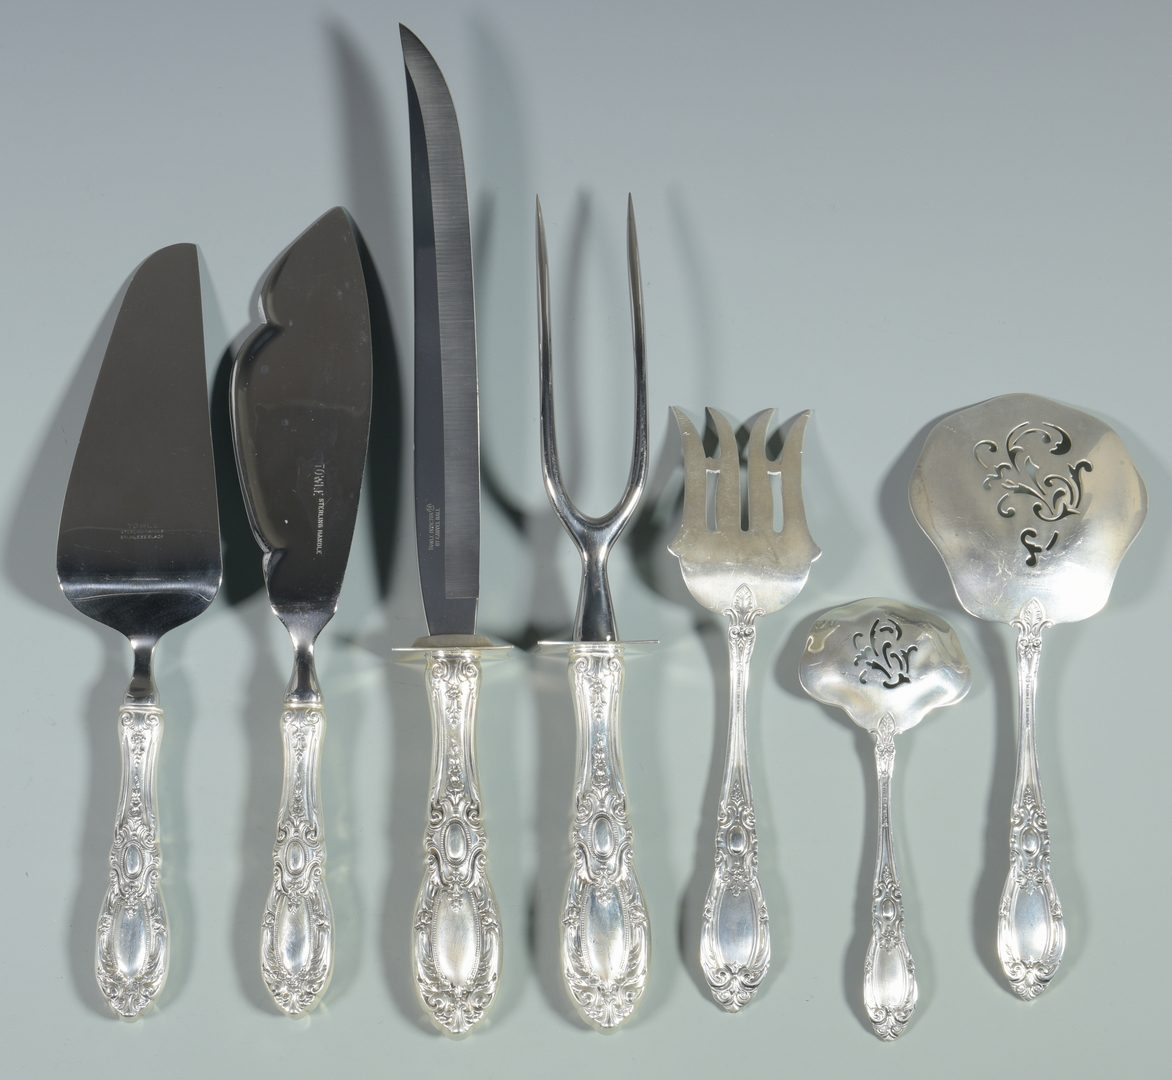 Lot 457: Towle King Richard Sterling Flatware, 60 pcs